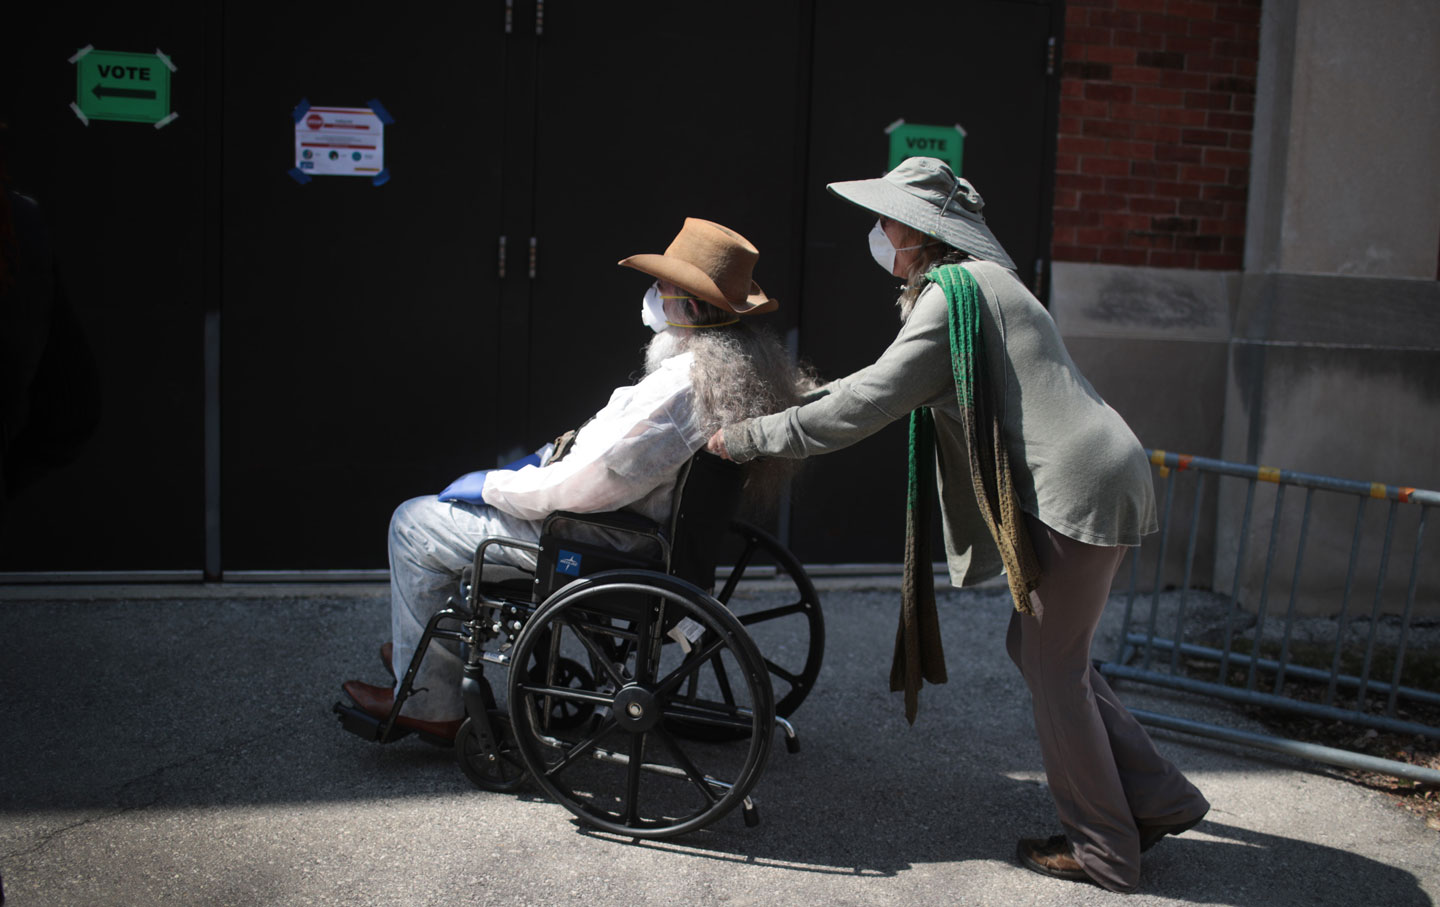 A person in wheelchair, being pushed by another person, waiting to cast their vote in the Wisconsin primary election